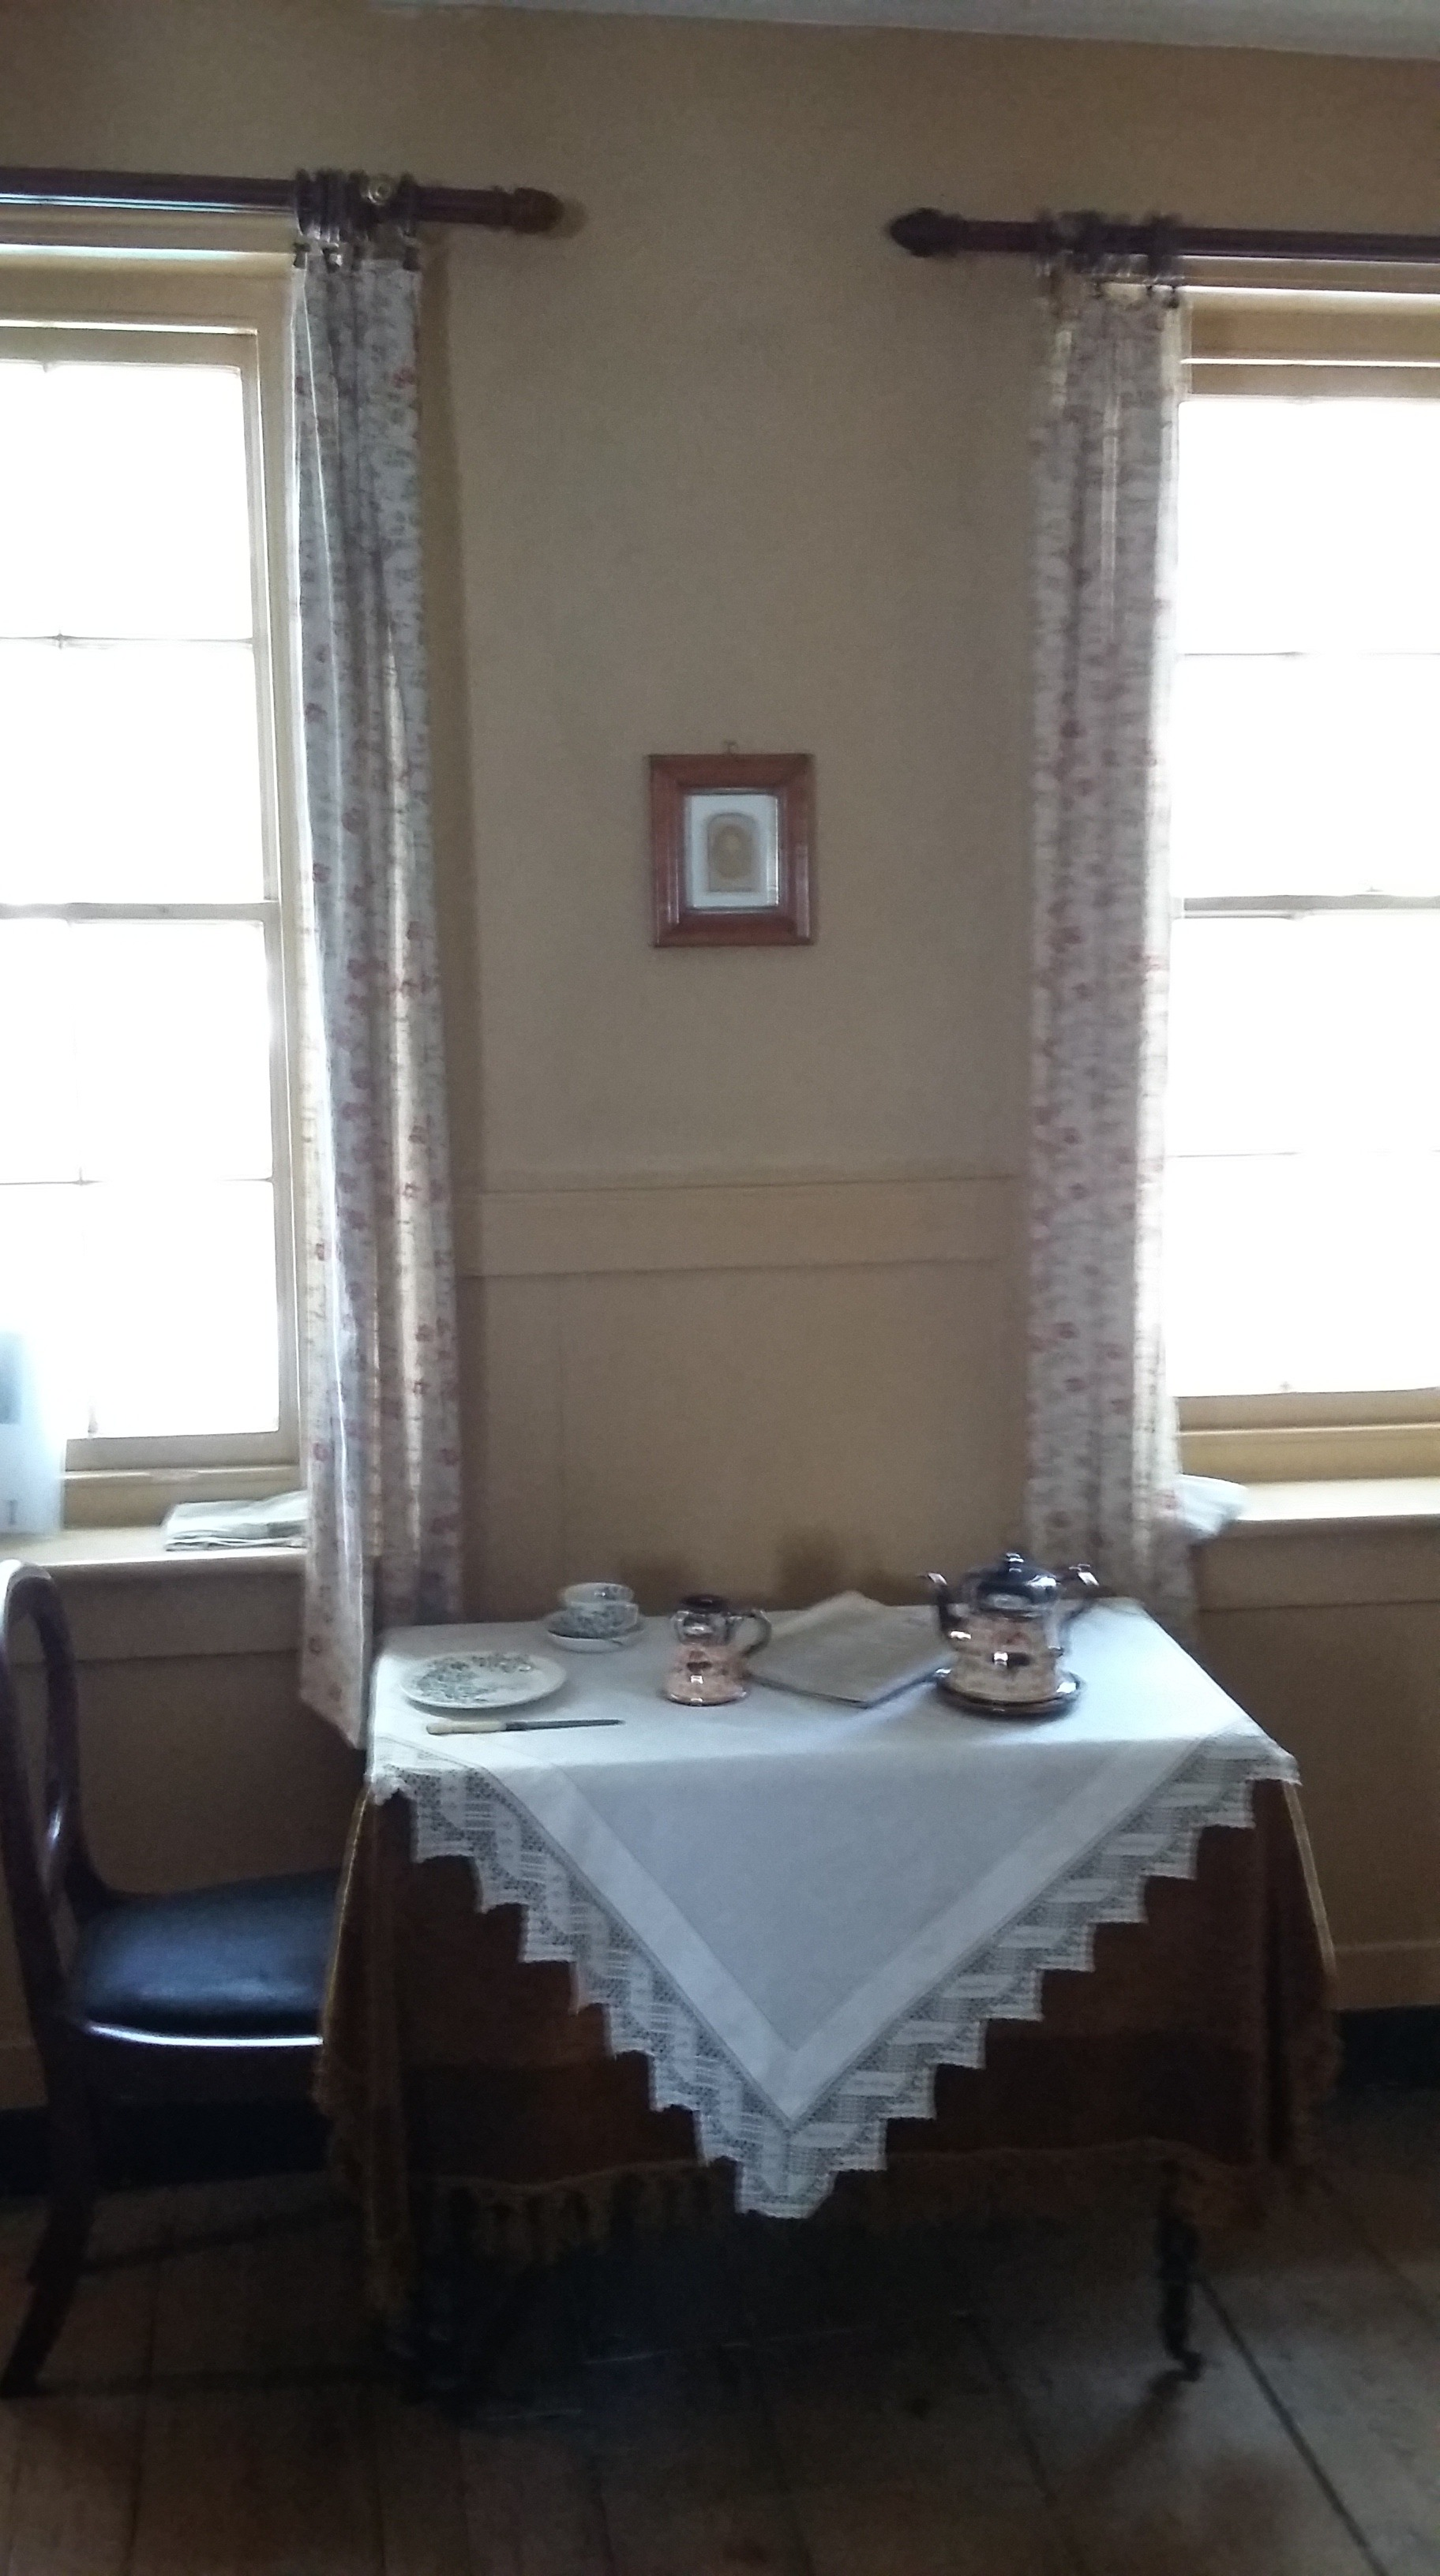 Nineteenth-century room